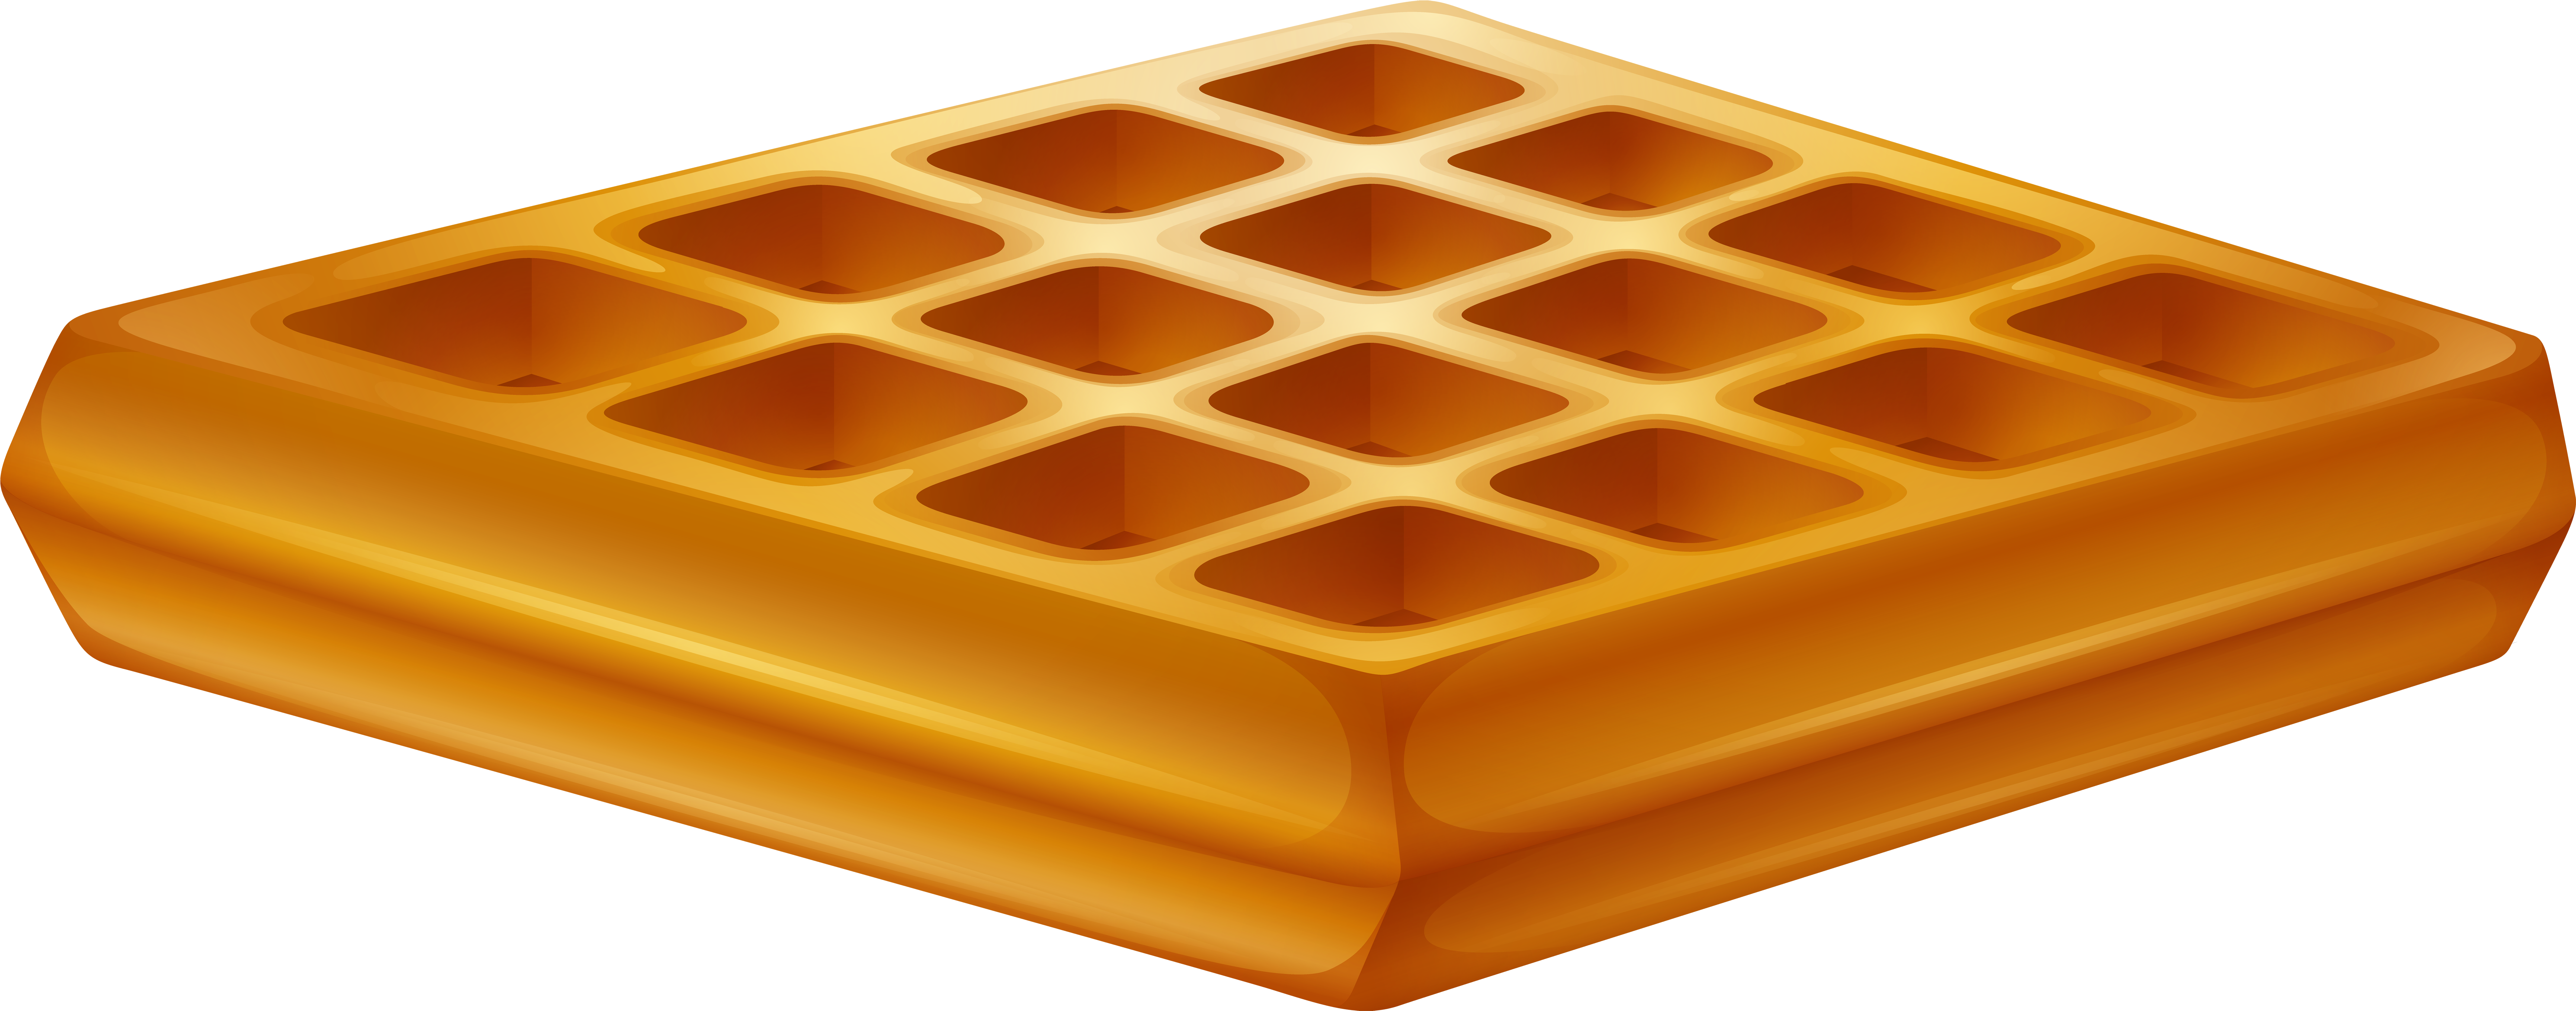 Waffle clipart transparent background. Download hd png clip